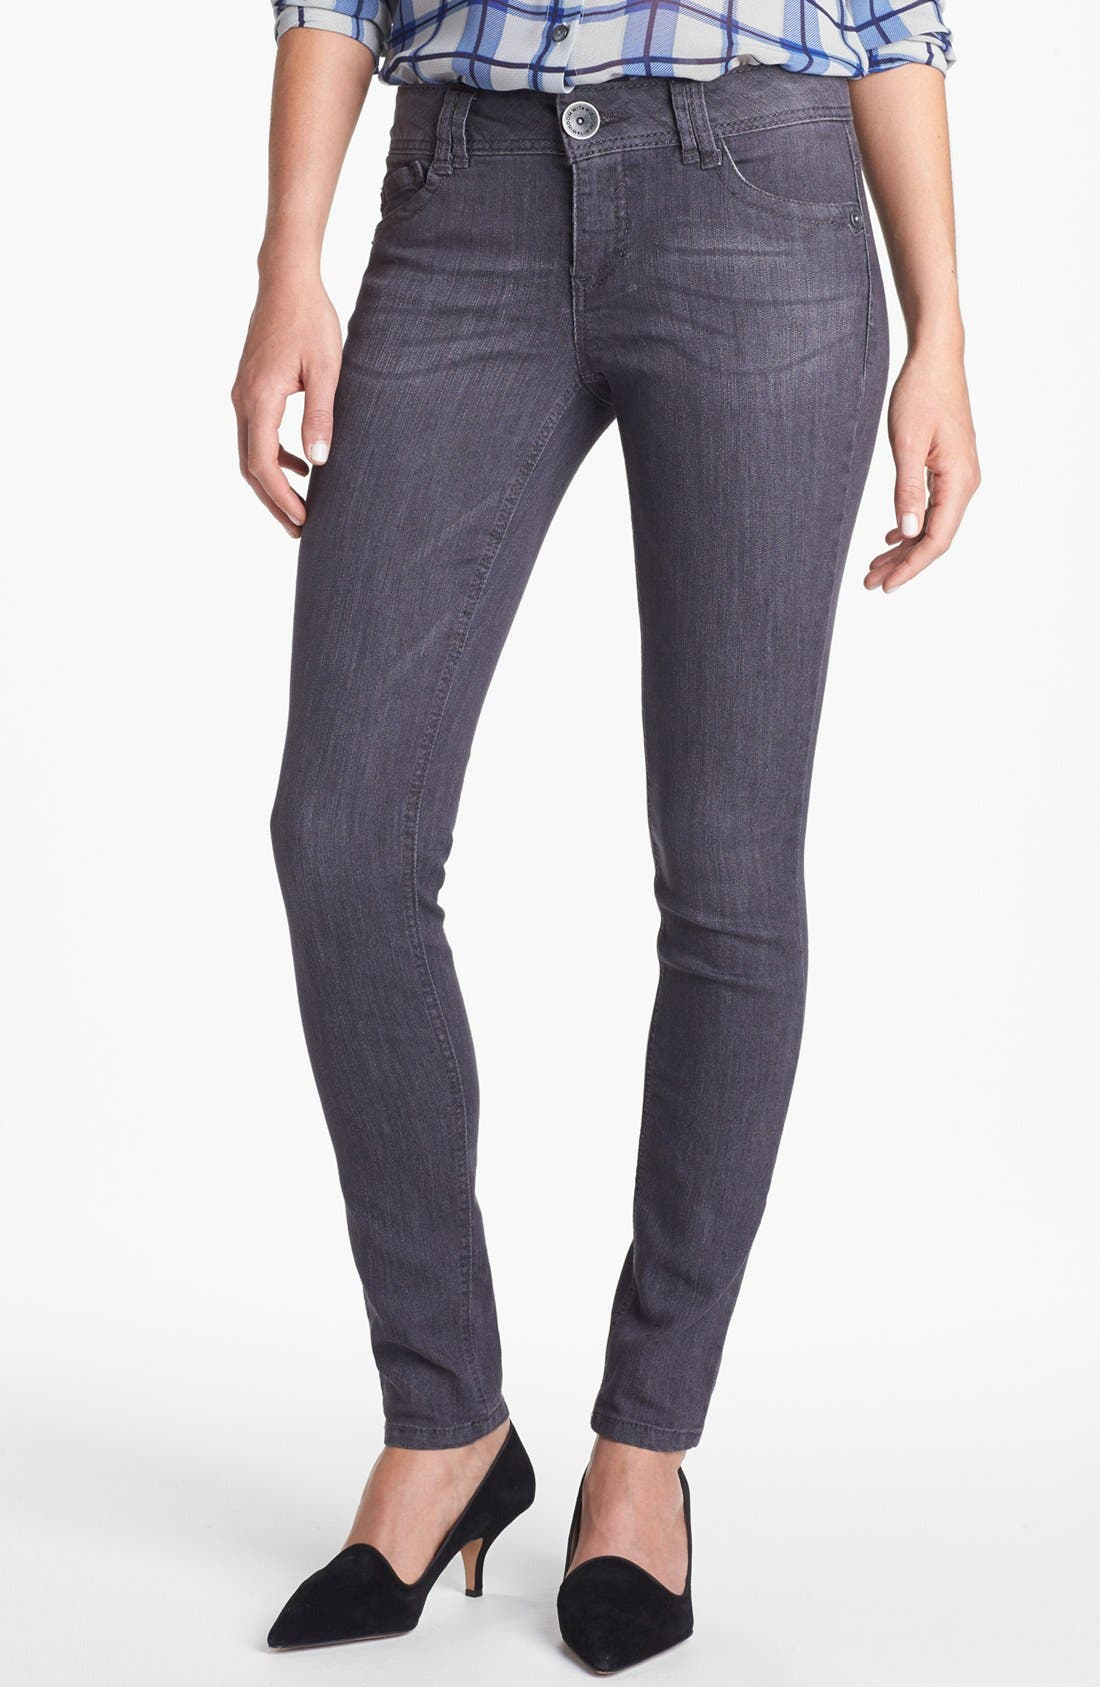 Main Image - Wit & Wisdom Skinny Jeans (Dark Grey) (Nordstrom Exclusive)